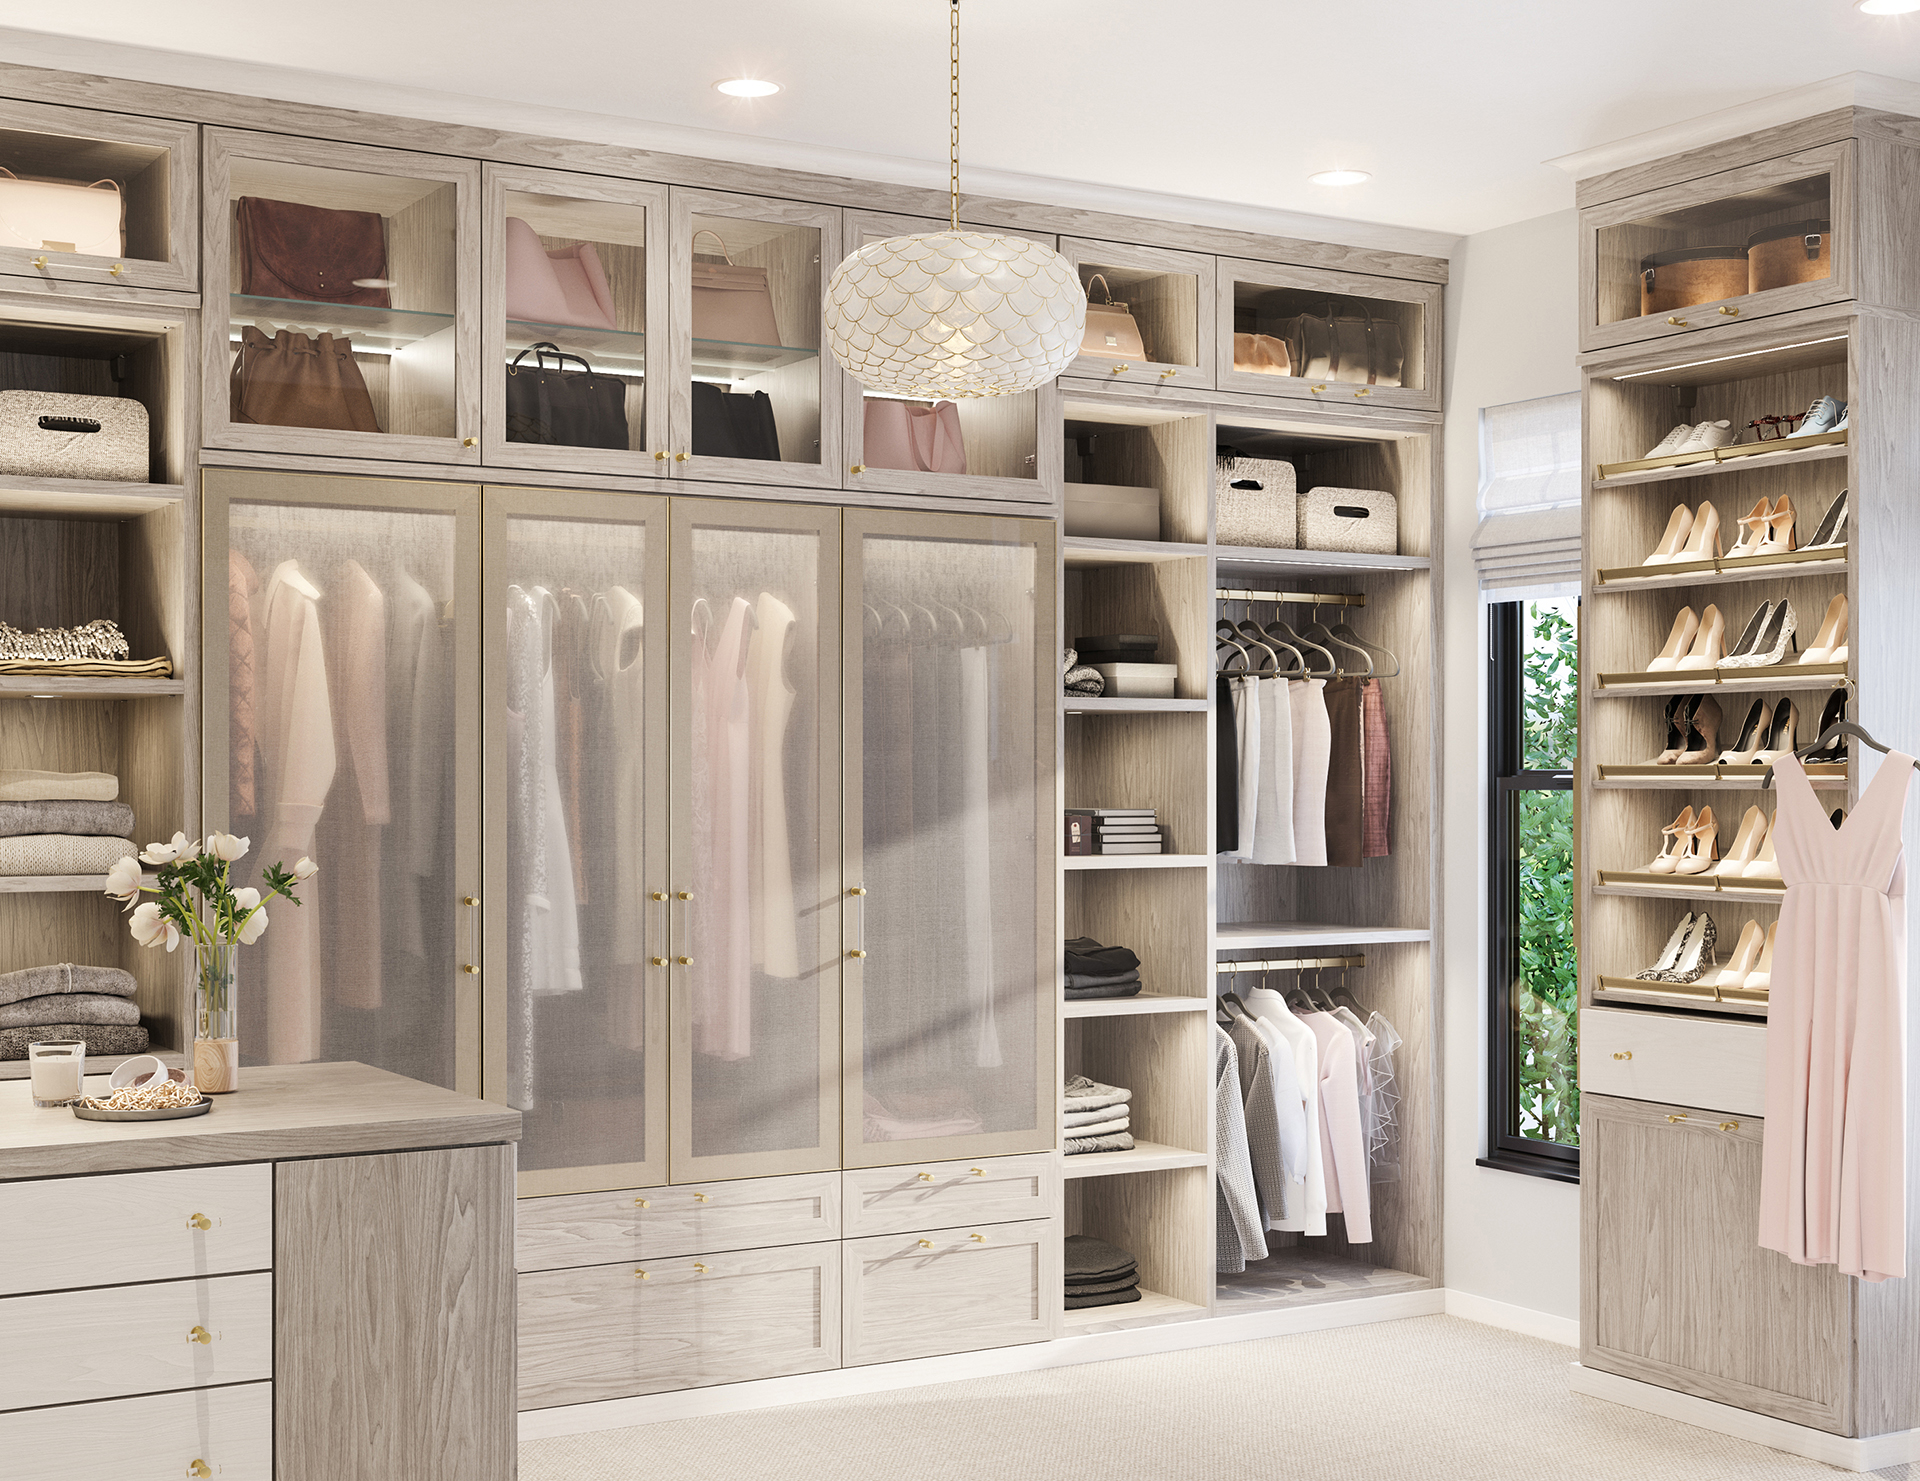 Walk in closet systems walk in closet design ideas - Walk in closet designs for a master bedroom ...